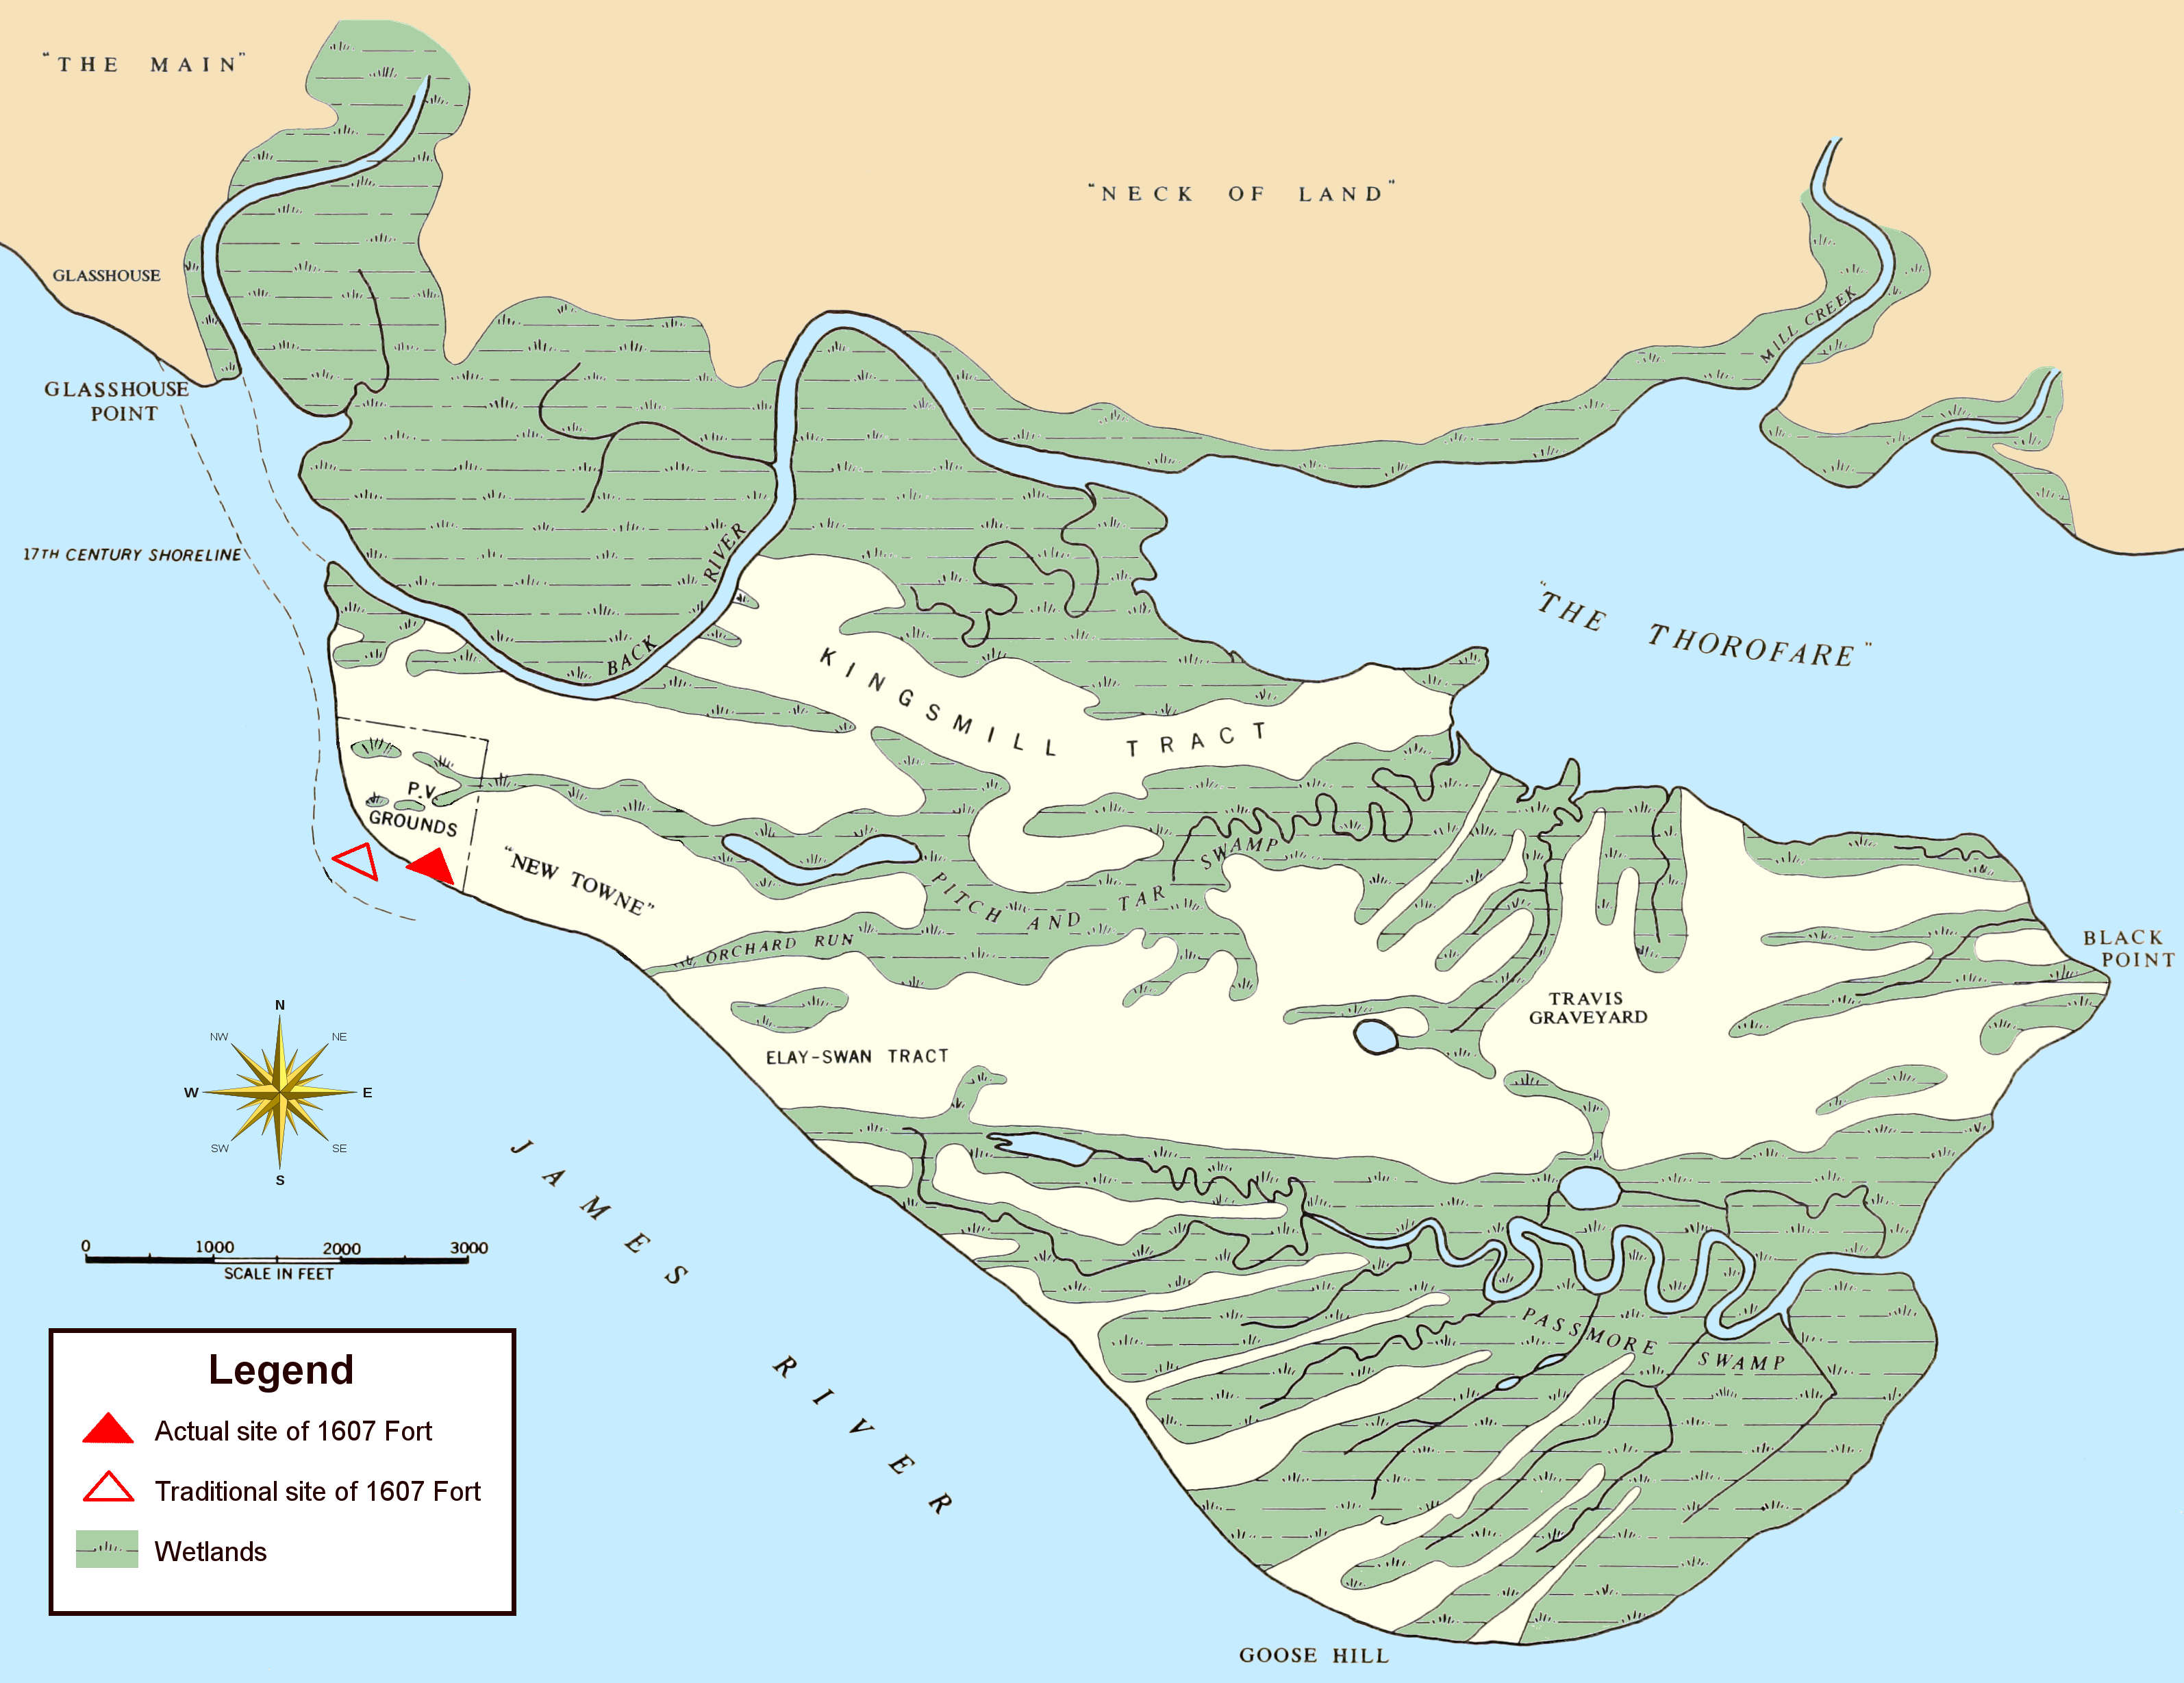 Map showing terrain of Jamestown Island (as it appeared in the middle of the 20th century). Note: roads and the causeway bridge linking the island to Glasshouse Point are not pictured. Indicated are the location where the 1607 James Fort was discovered (in 1994), as well as where it had traditionally thought to have been located.